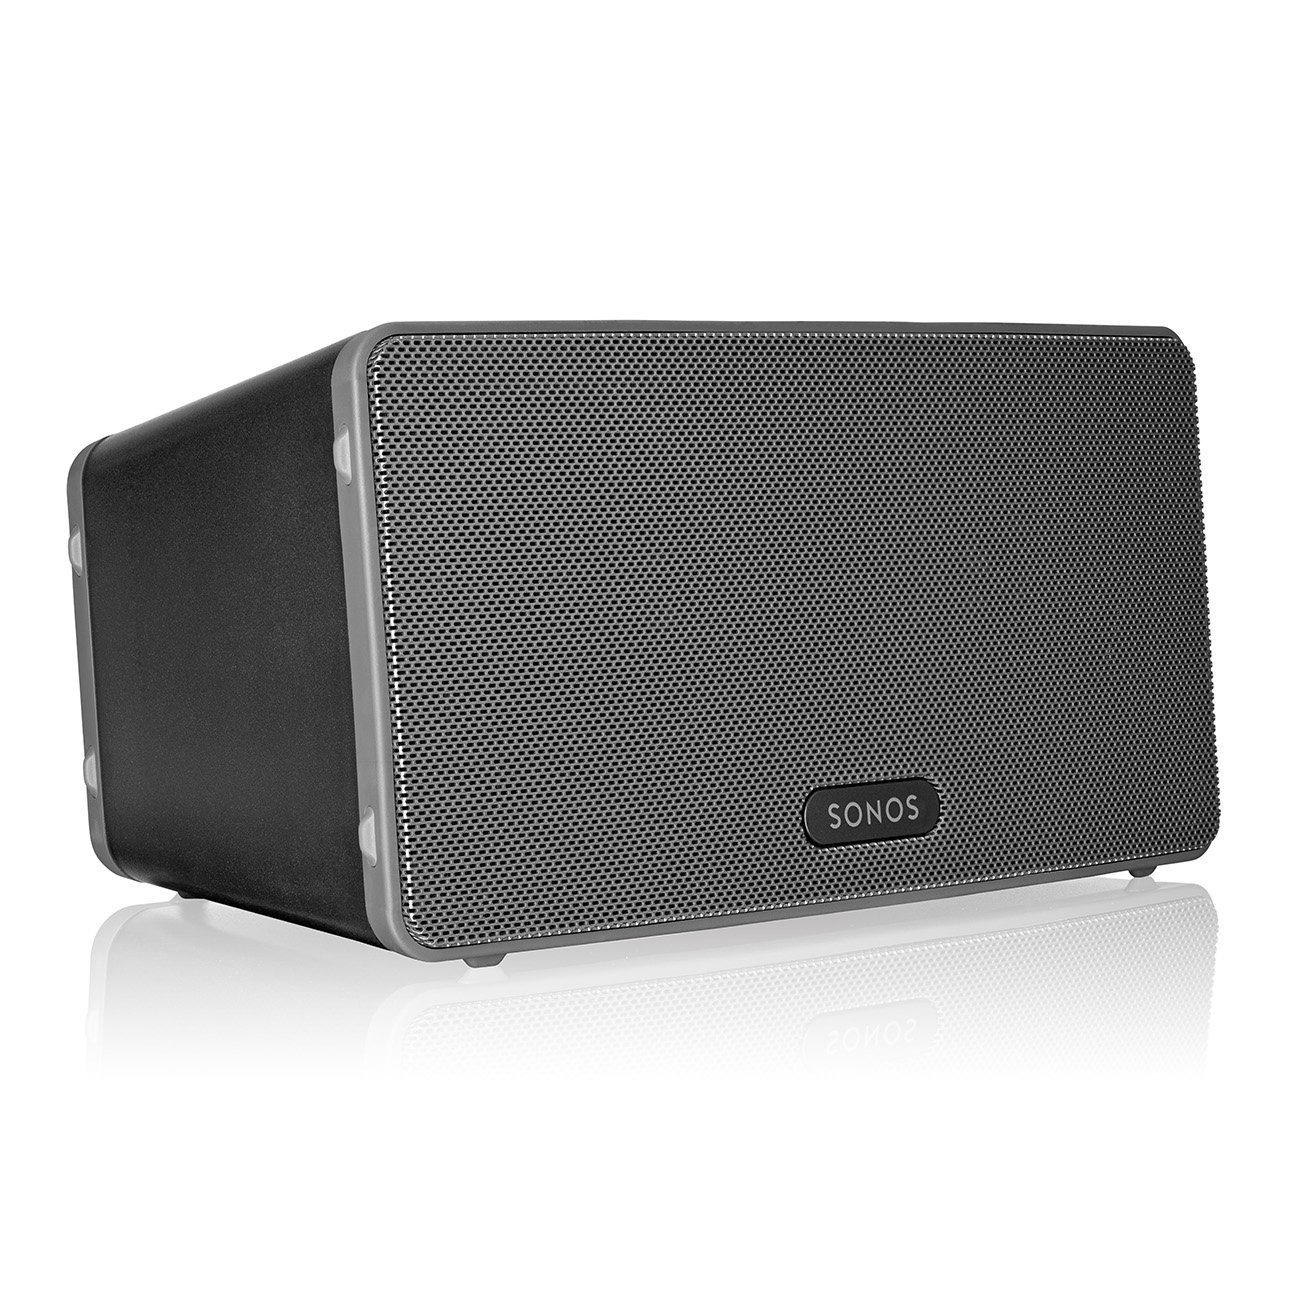 SONOS Wireless Speakers